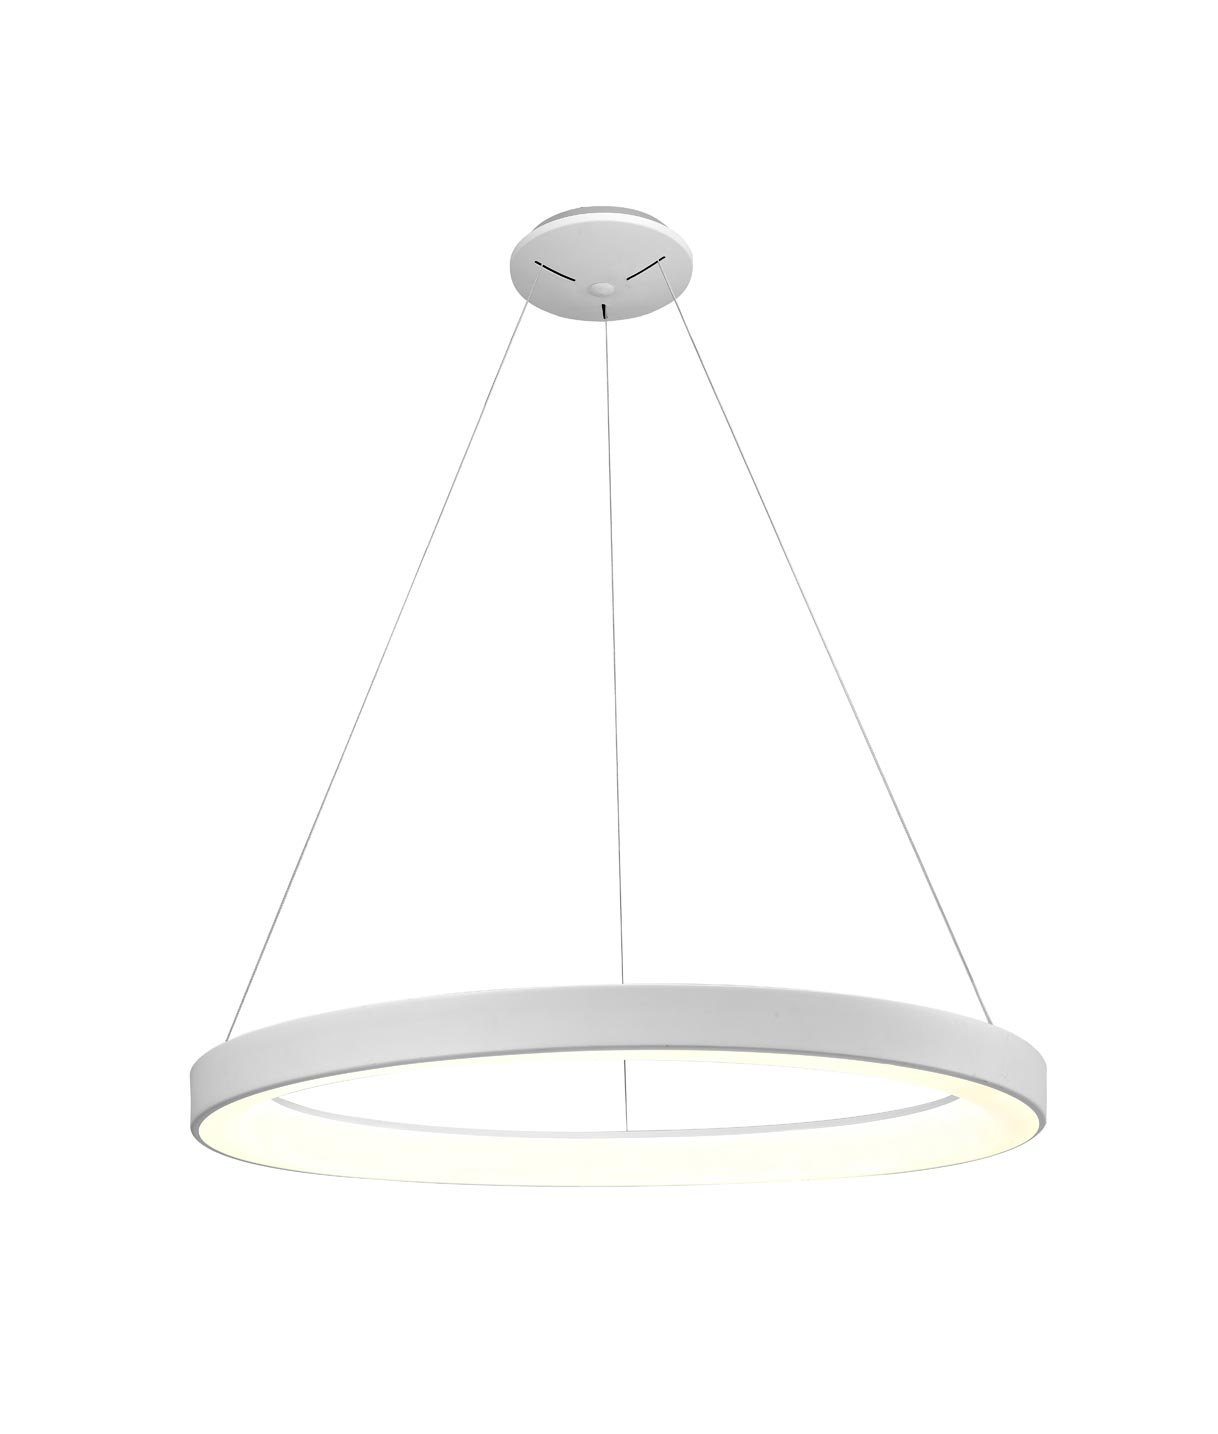 Colgante grande dimmable blanco NISEKO LED